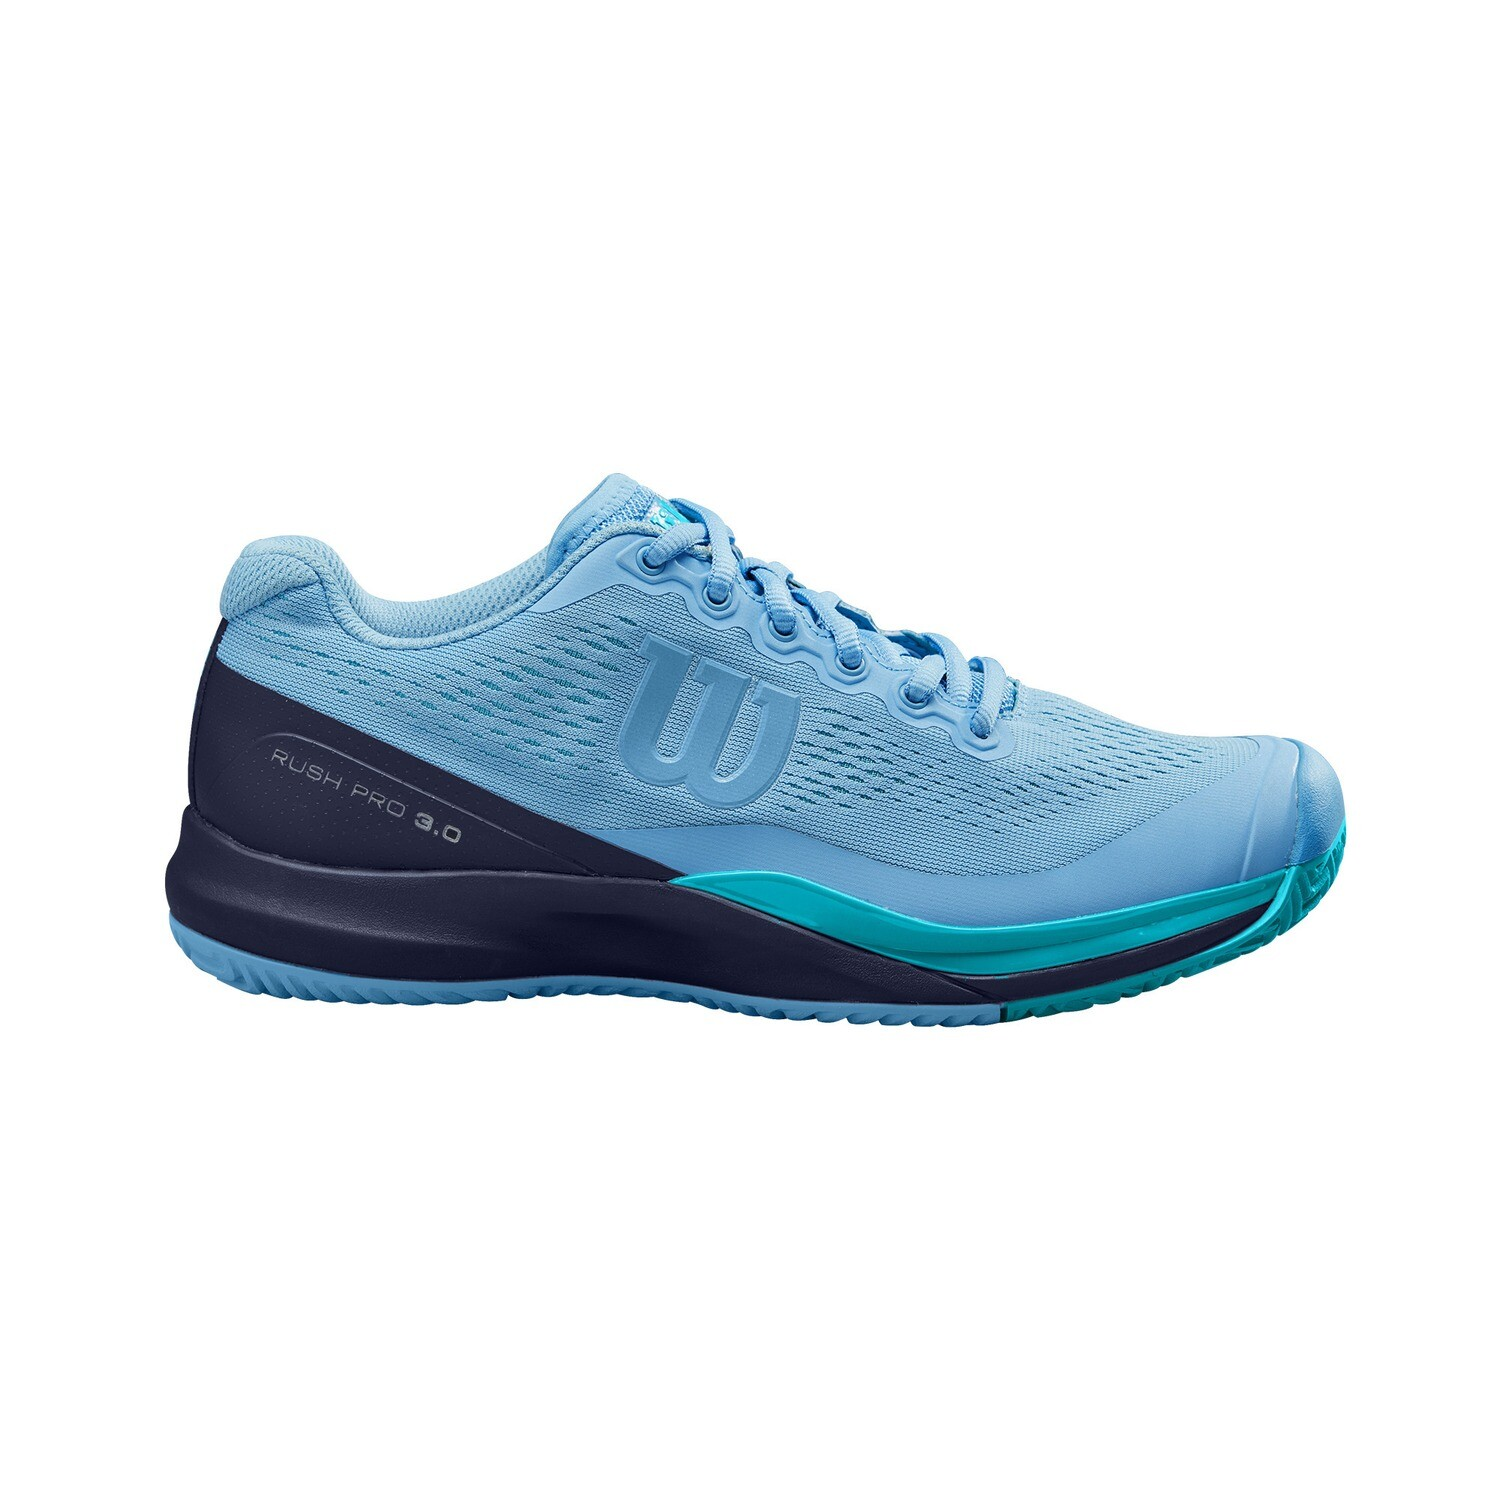 Wilson Rush Pro 3.0 Ladies Tennis Shoes - Alaskan/Peacoat/Scuba